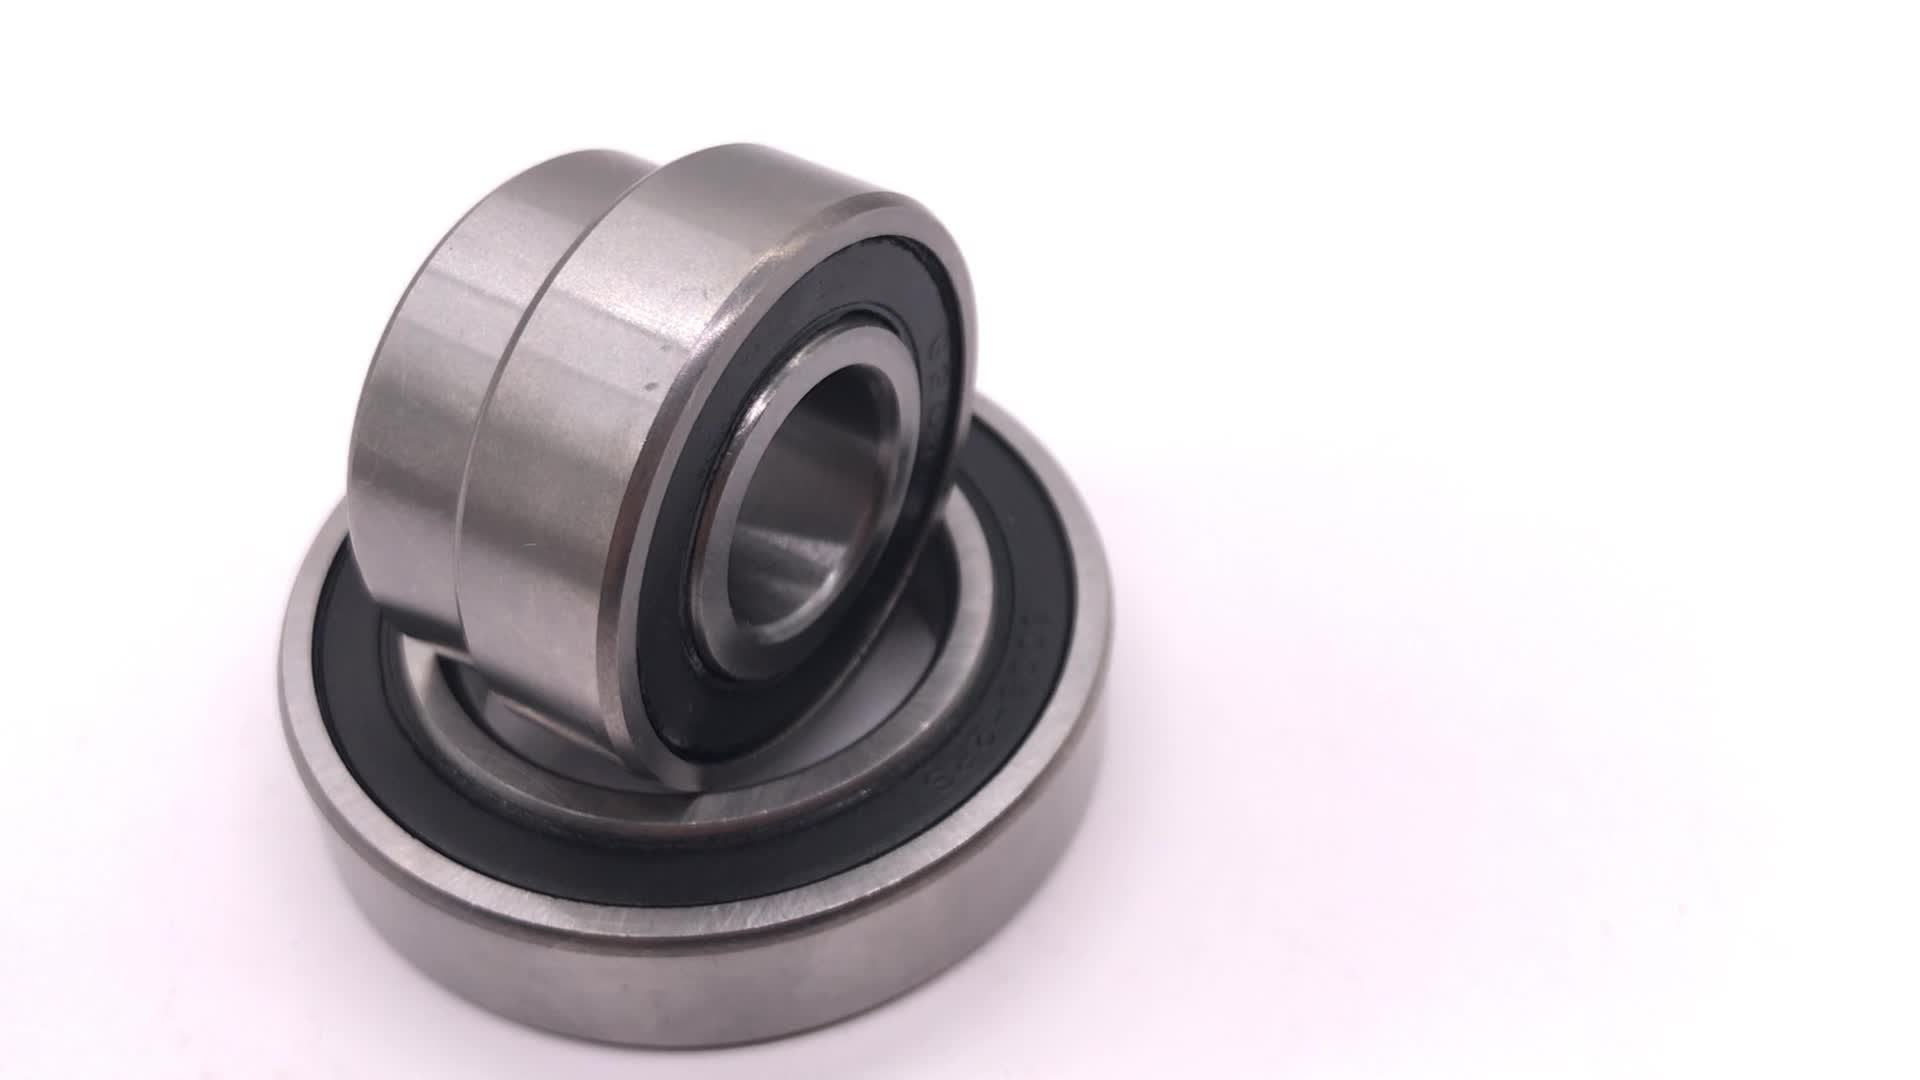 6309 du Bearing Low noise Deep Groove Ball Bearing 6309du Bearing 45*100*25